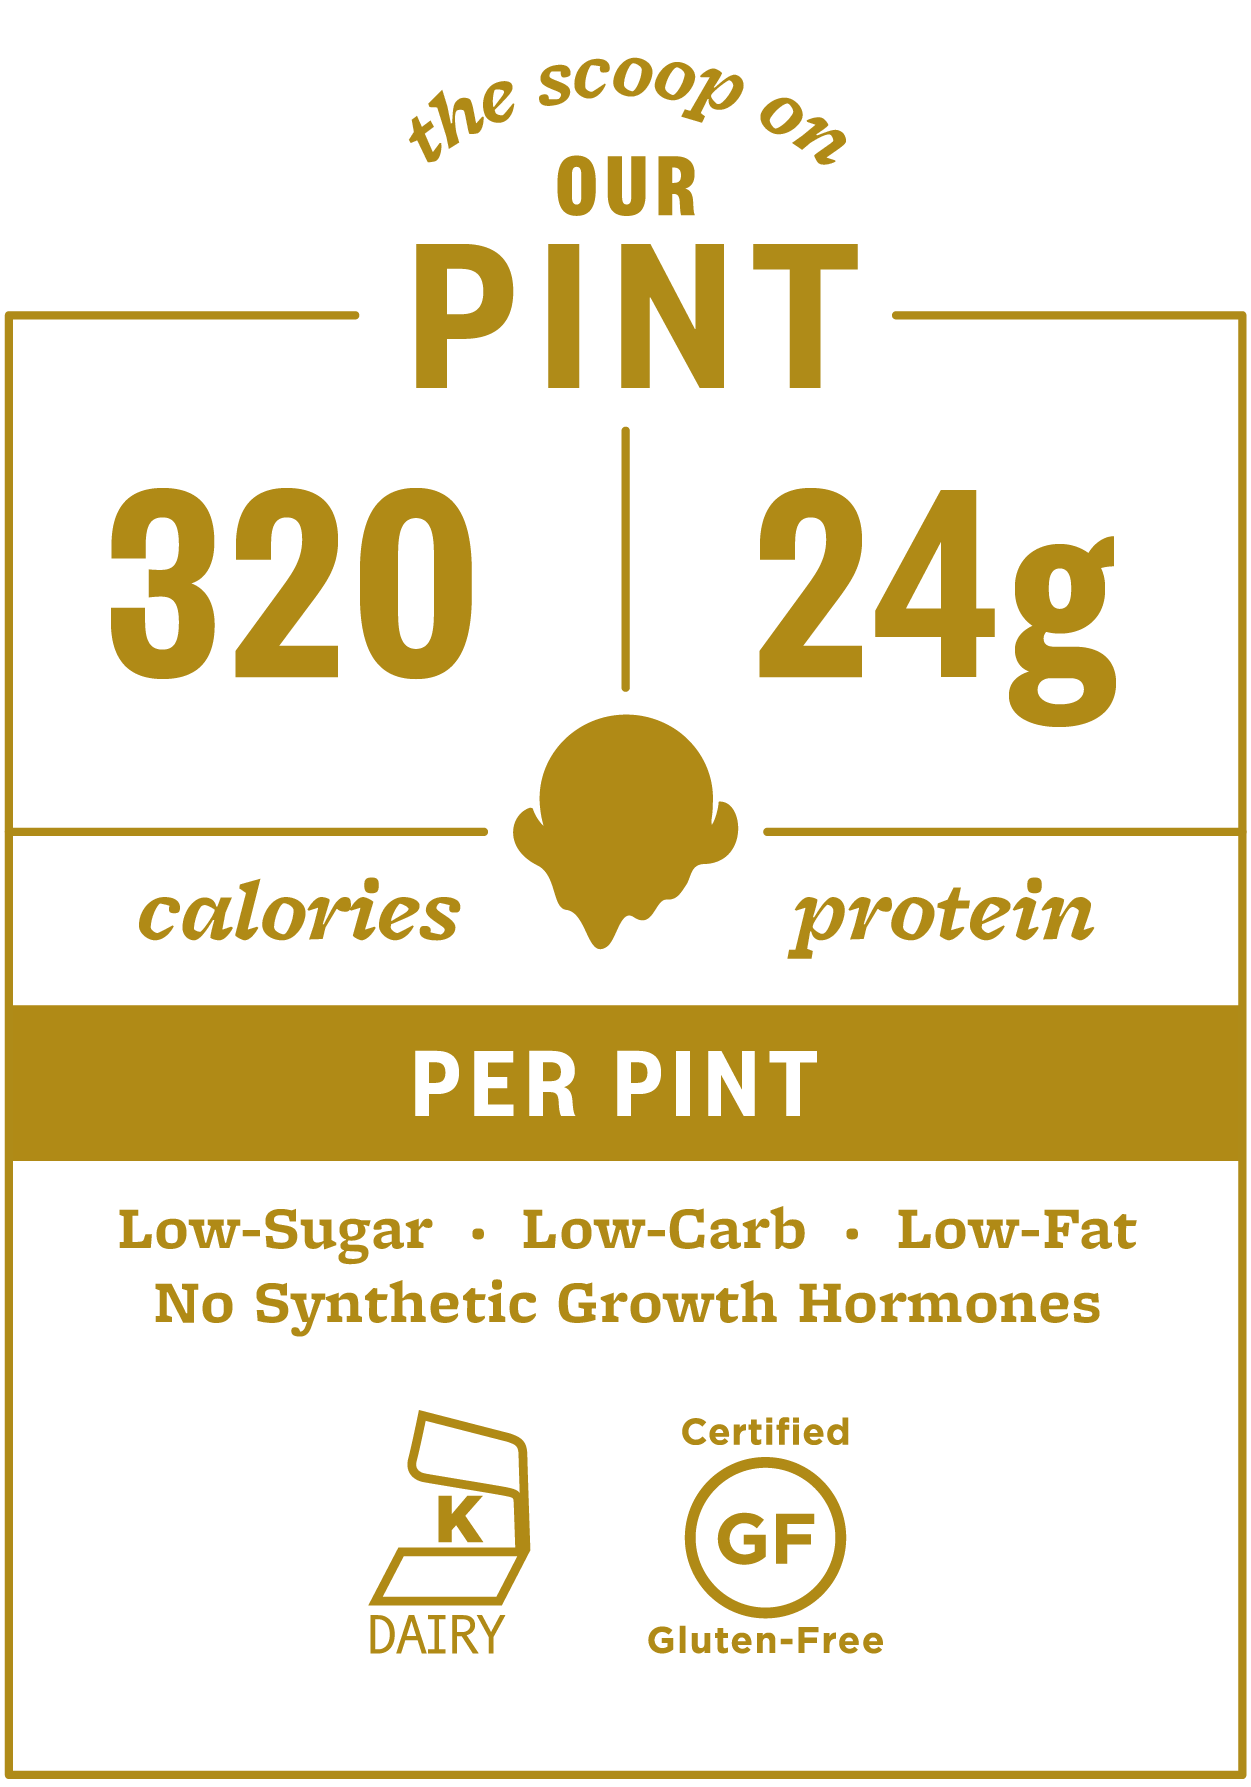 HT_Flavors_Scoop-Facts_170320_320cal-24g.png